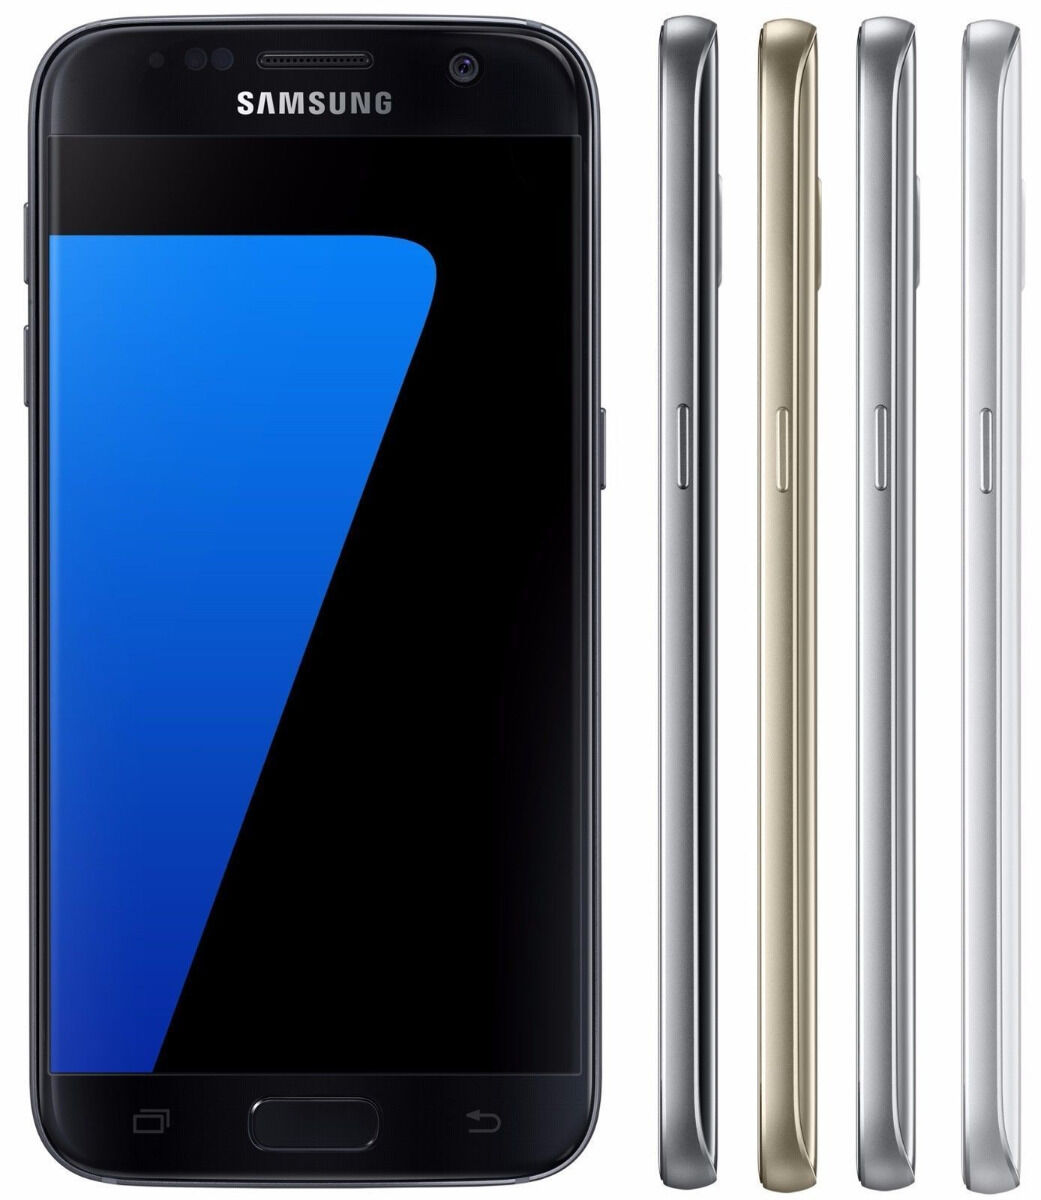 Samsung Galaxy S7 - 32GB - All Colors (GSM Unlocked; AT&T / T-Mobile) Smartphone